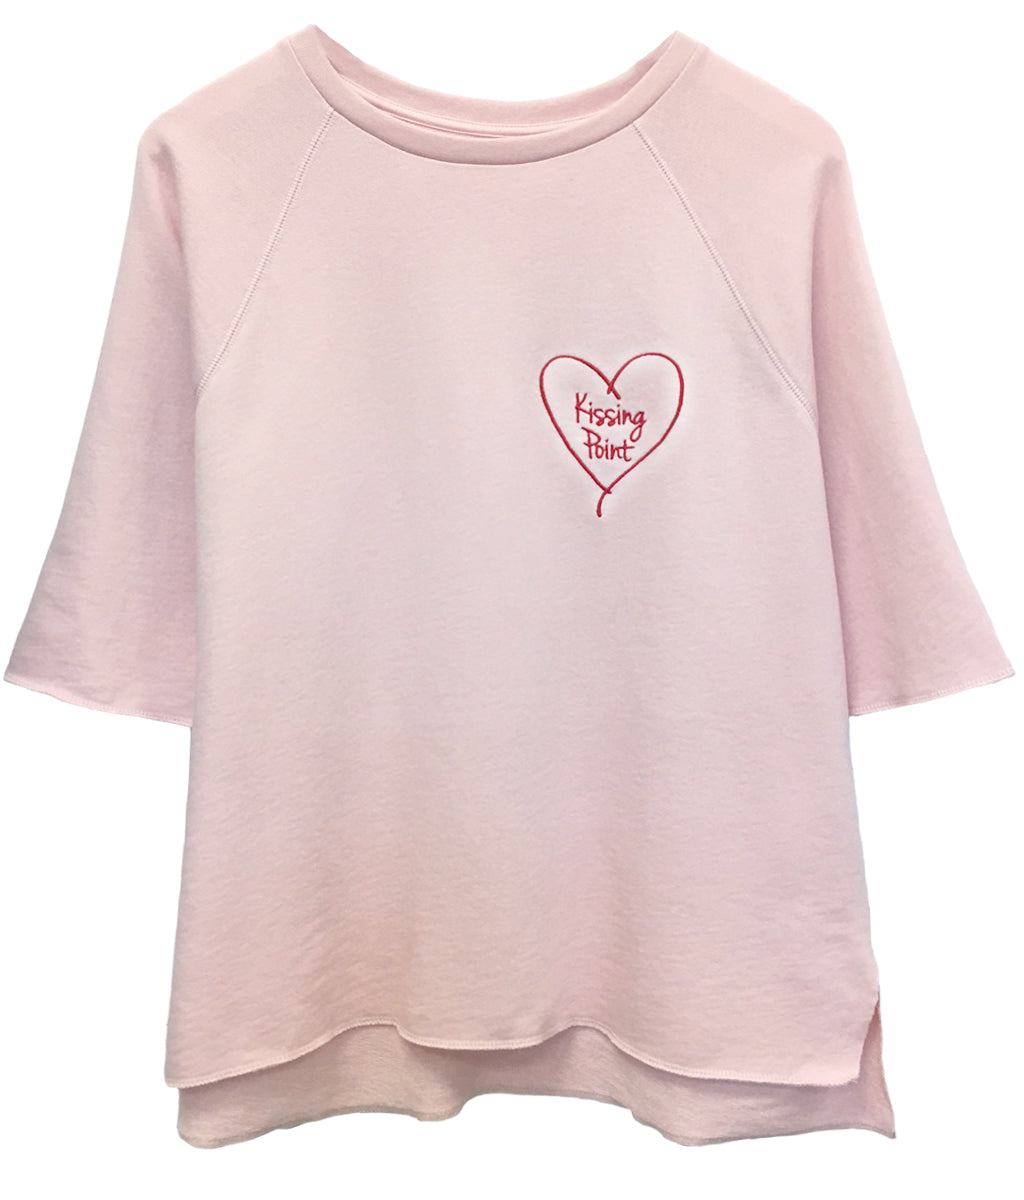 Julie - Short Sleeve Sweatshirt - Kissing Point